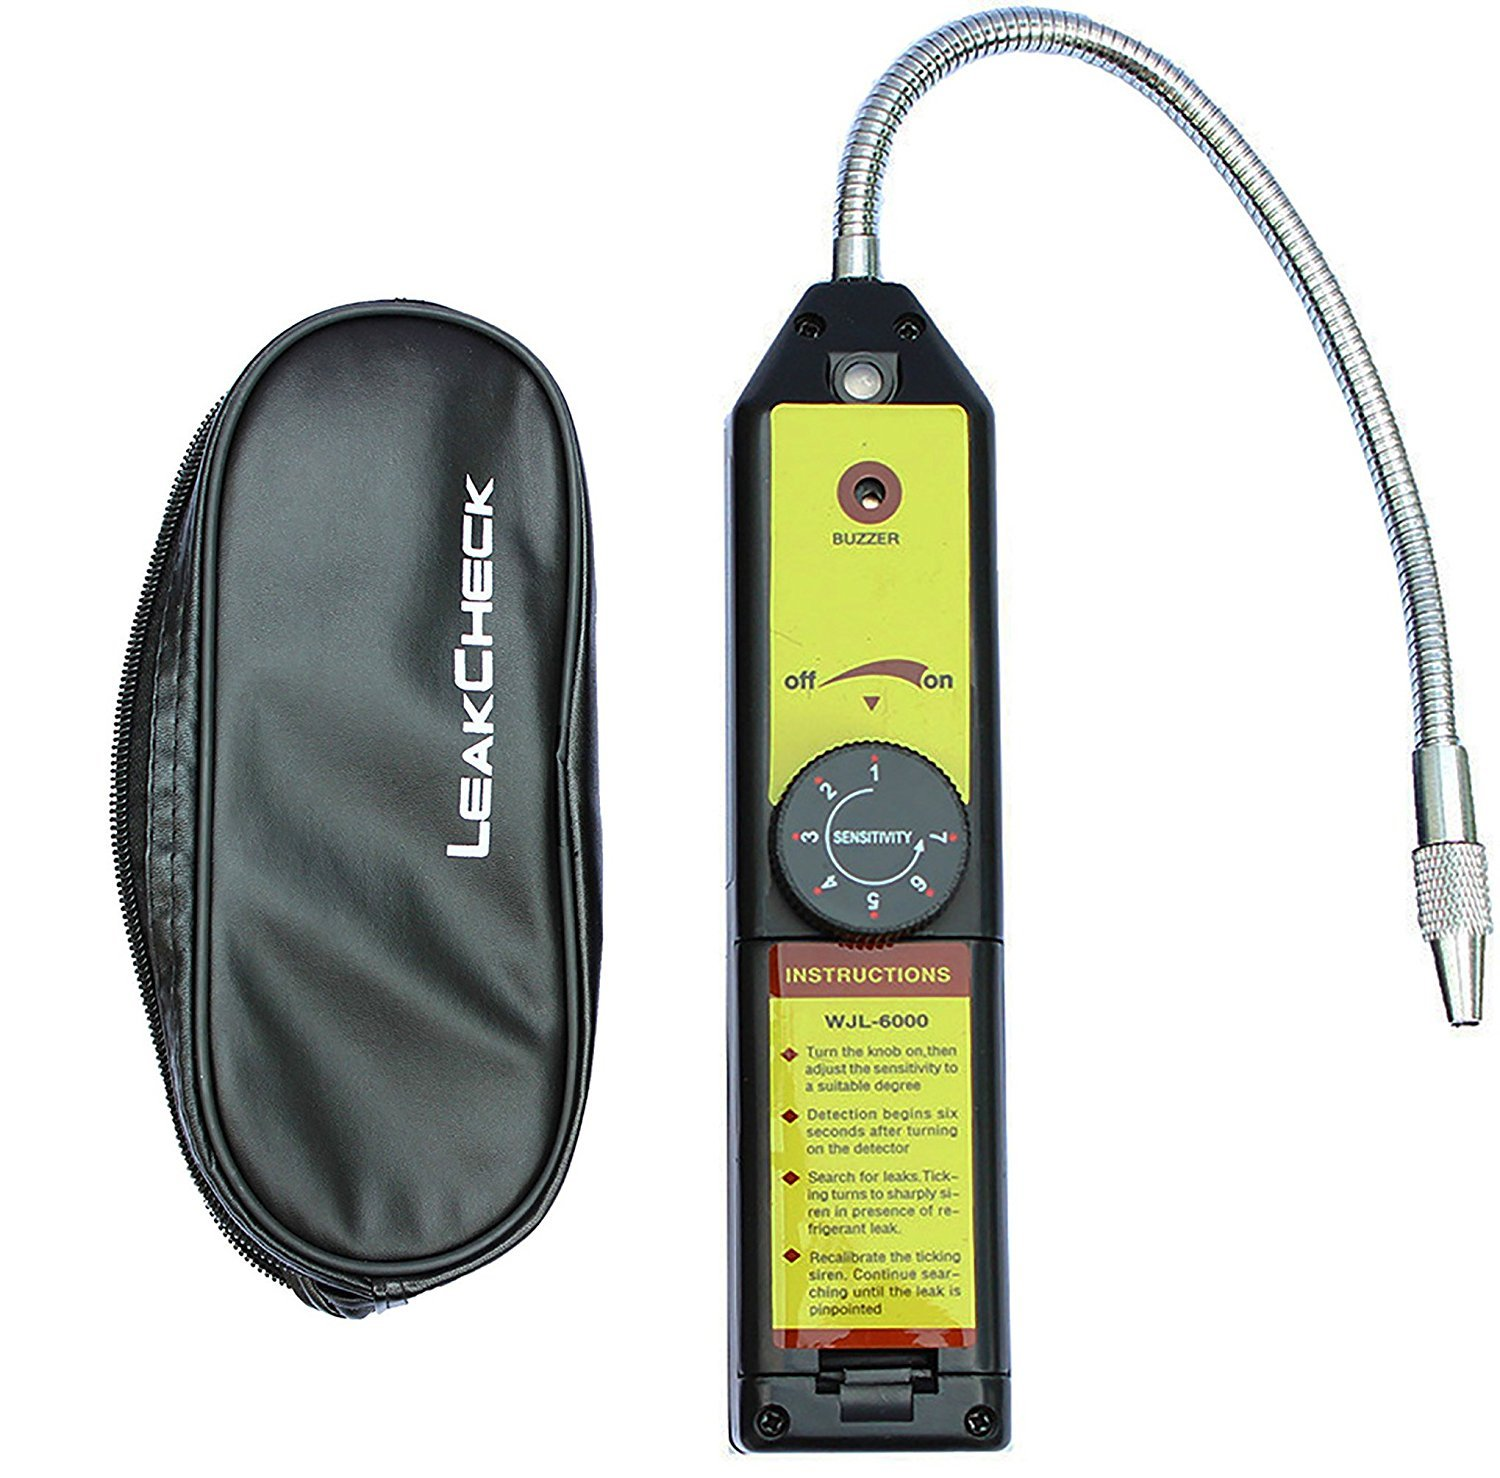 LotFancy Refrigerant Freon Leak Detector for HFC CFC Halogen R134a R410a R22a R600a R290 Air Condition HVAC 12P-2629-C